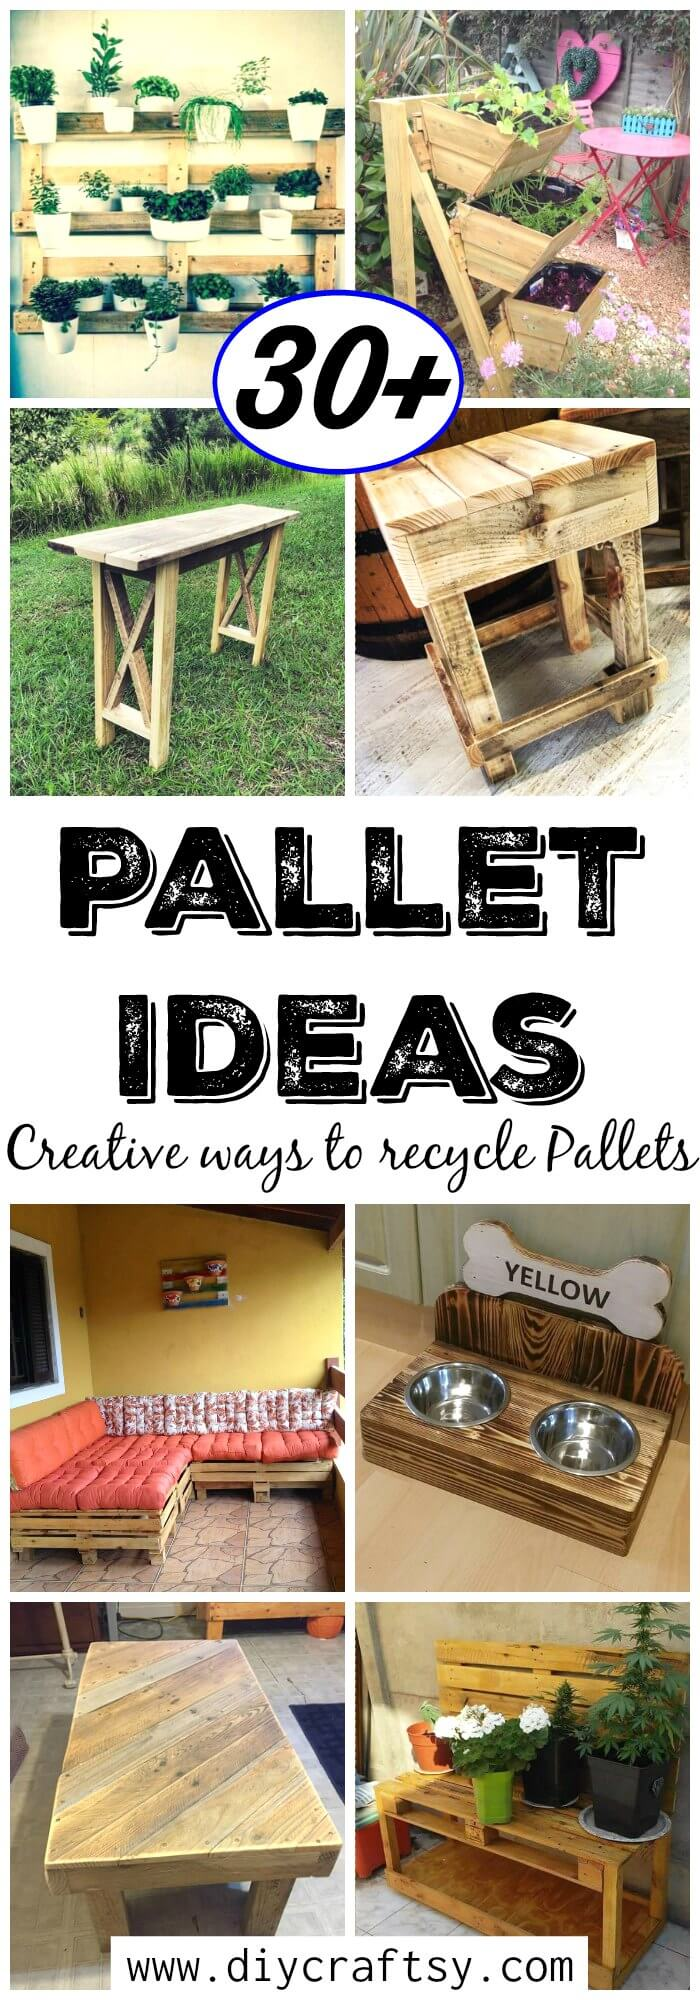 30 pallet ideas creative ways to recycle pallets diy for Creative ways to recycle